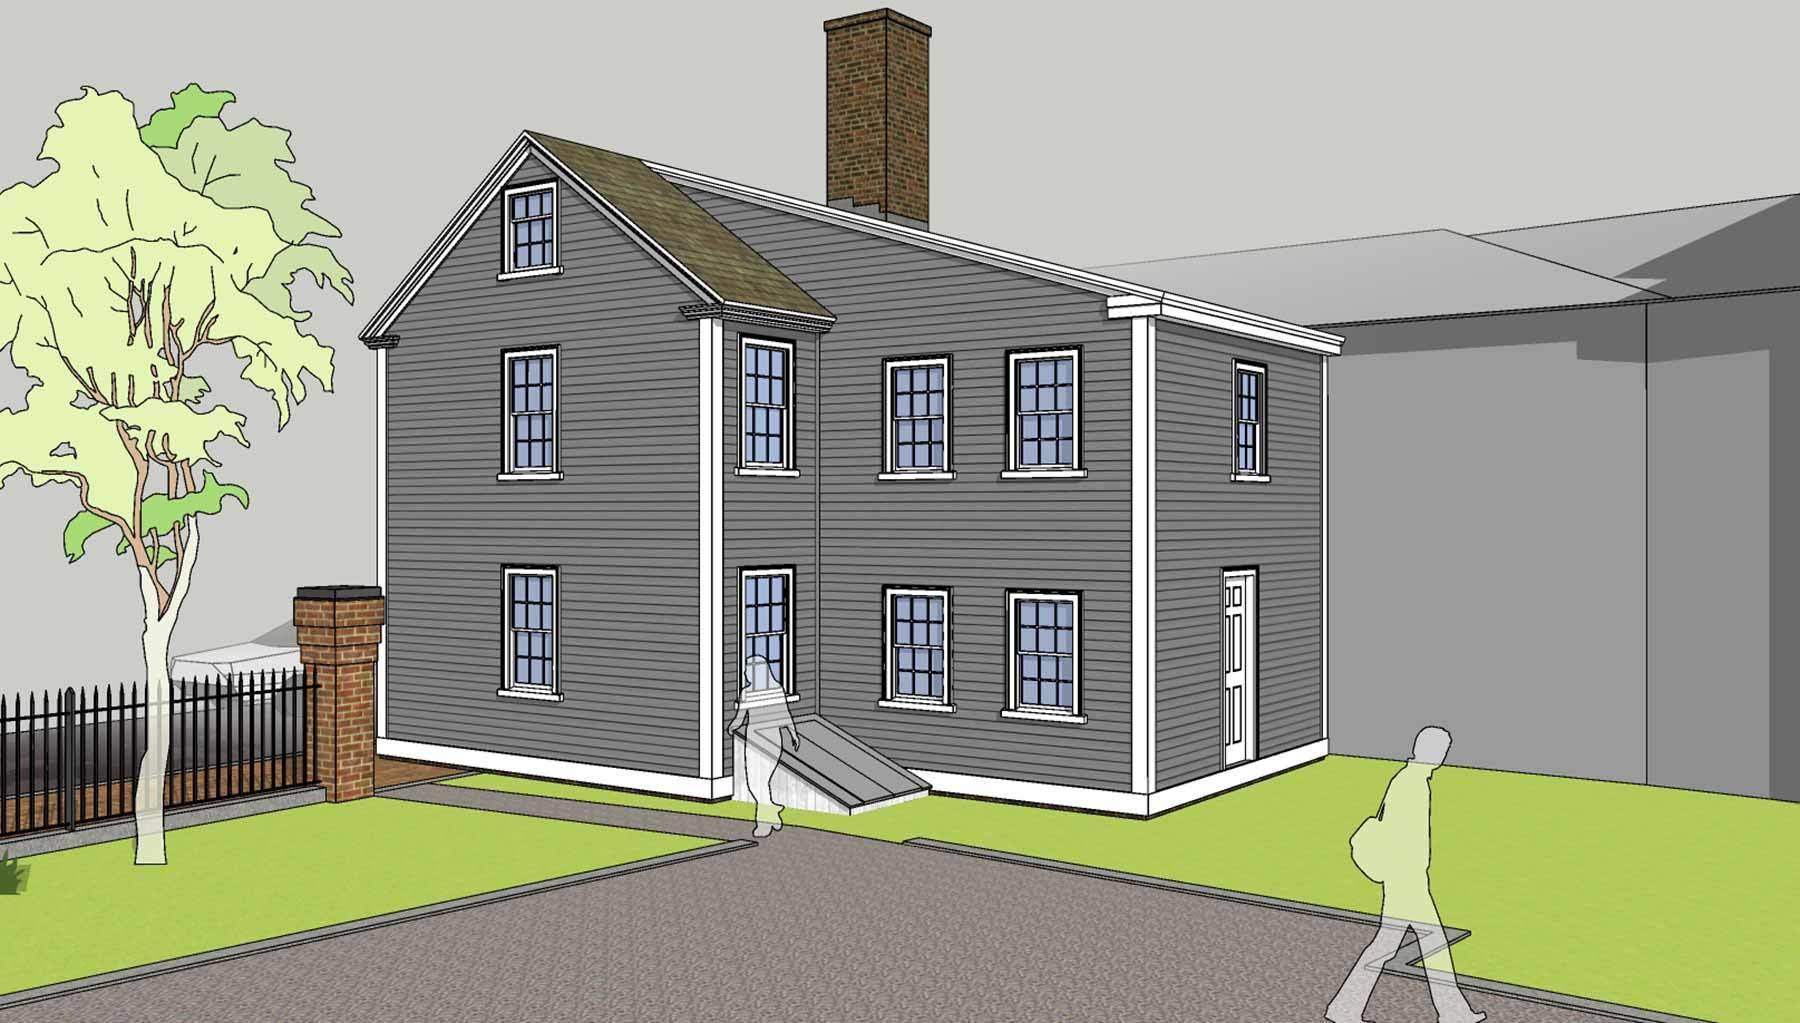 drawing bray house